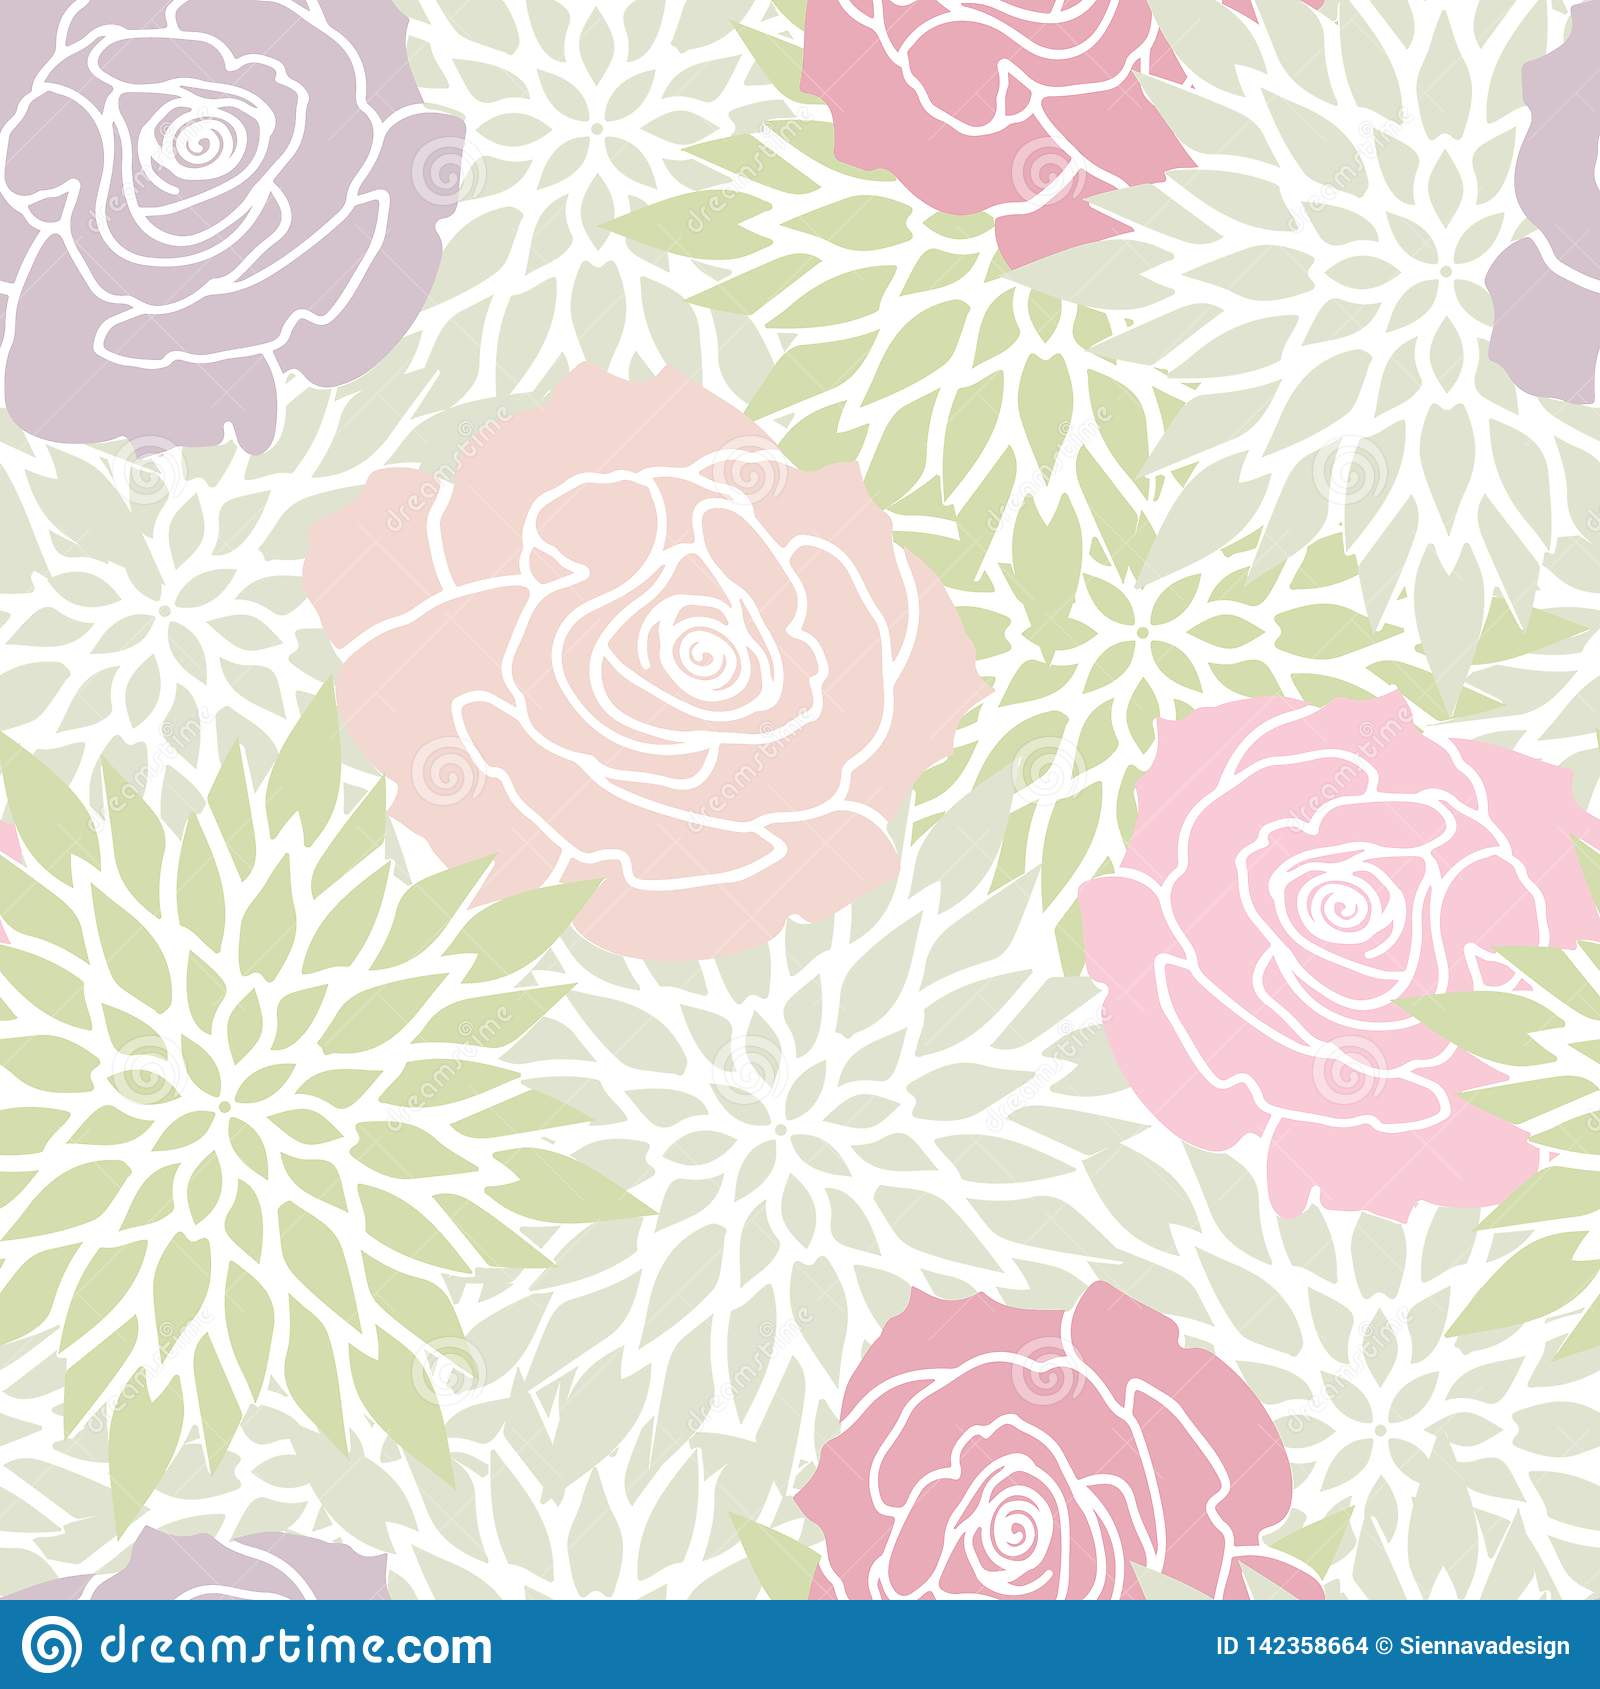 Green Blush Pink Rose Floral Seamless Pattern